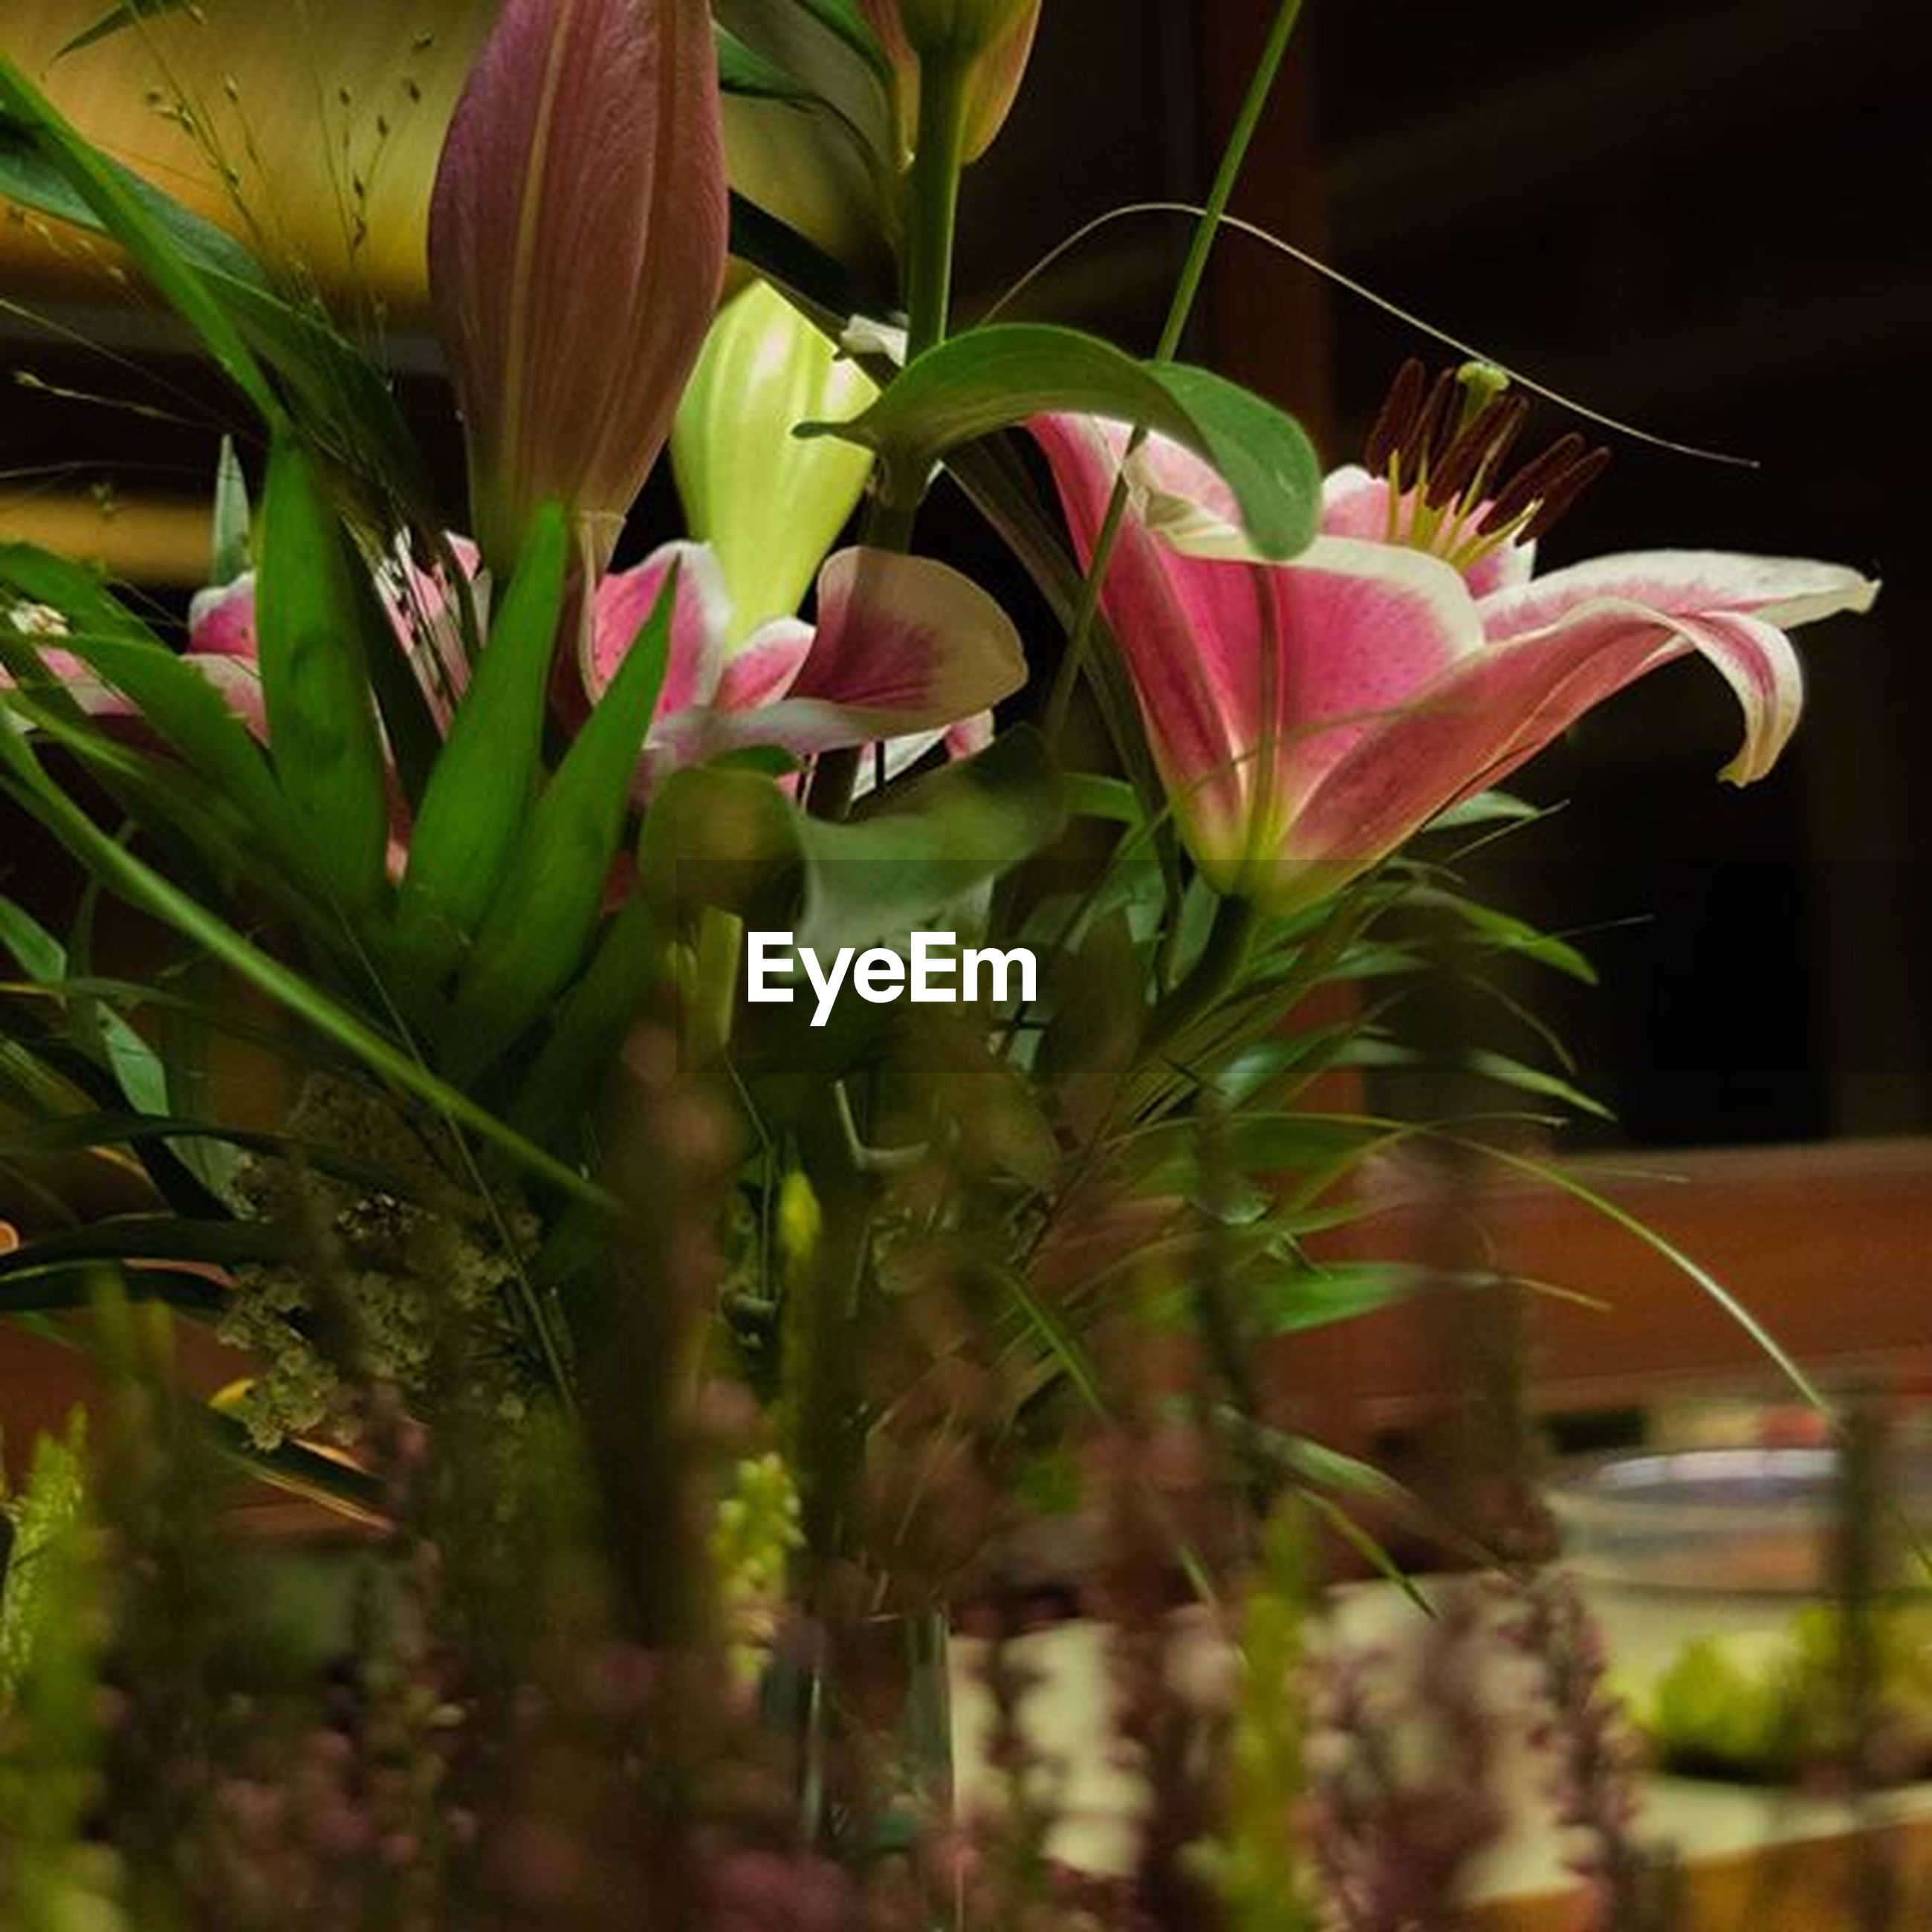 flower, growth, plant, freshness, fragility, petal, close-up, leaf, focus on foreground, potted plant, nature, beauty in nature, selective focus, stem, blooming, flower head, pink color, no people, in bloom, day